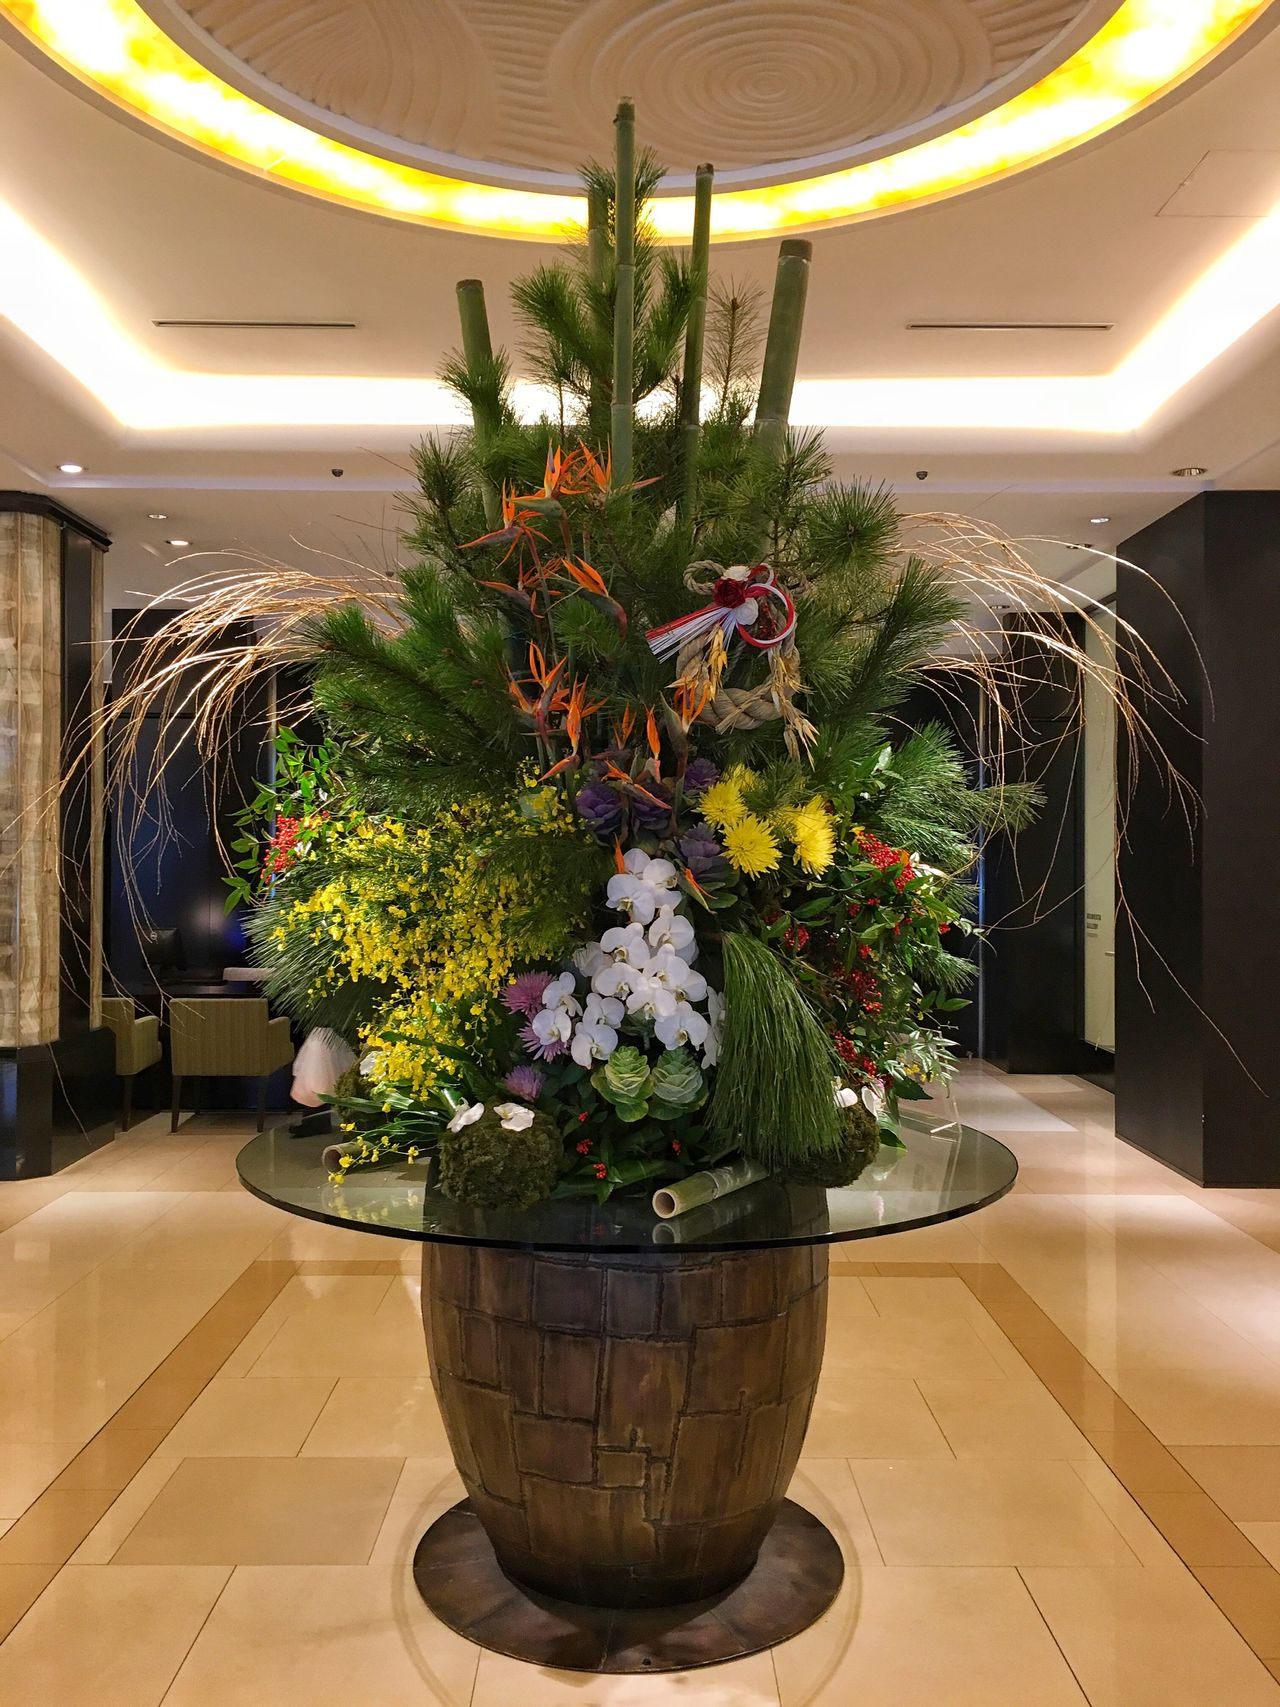 Flower Plant Indoors  Modern Hotel Hotel Lobby Decoration Decorations Decorative Sapporo Sapporo-shi Sapporo,Hokkaido,Japan